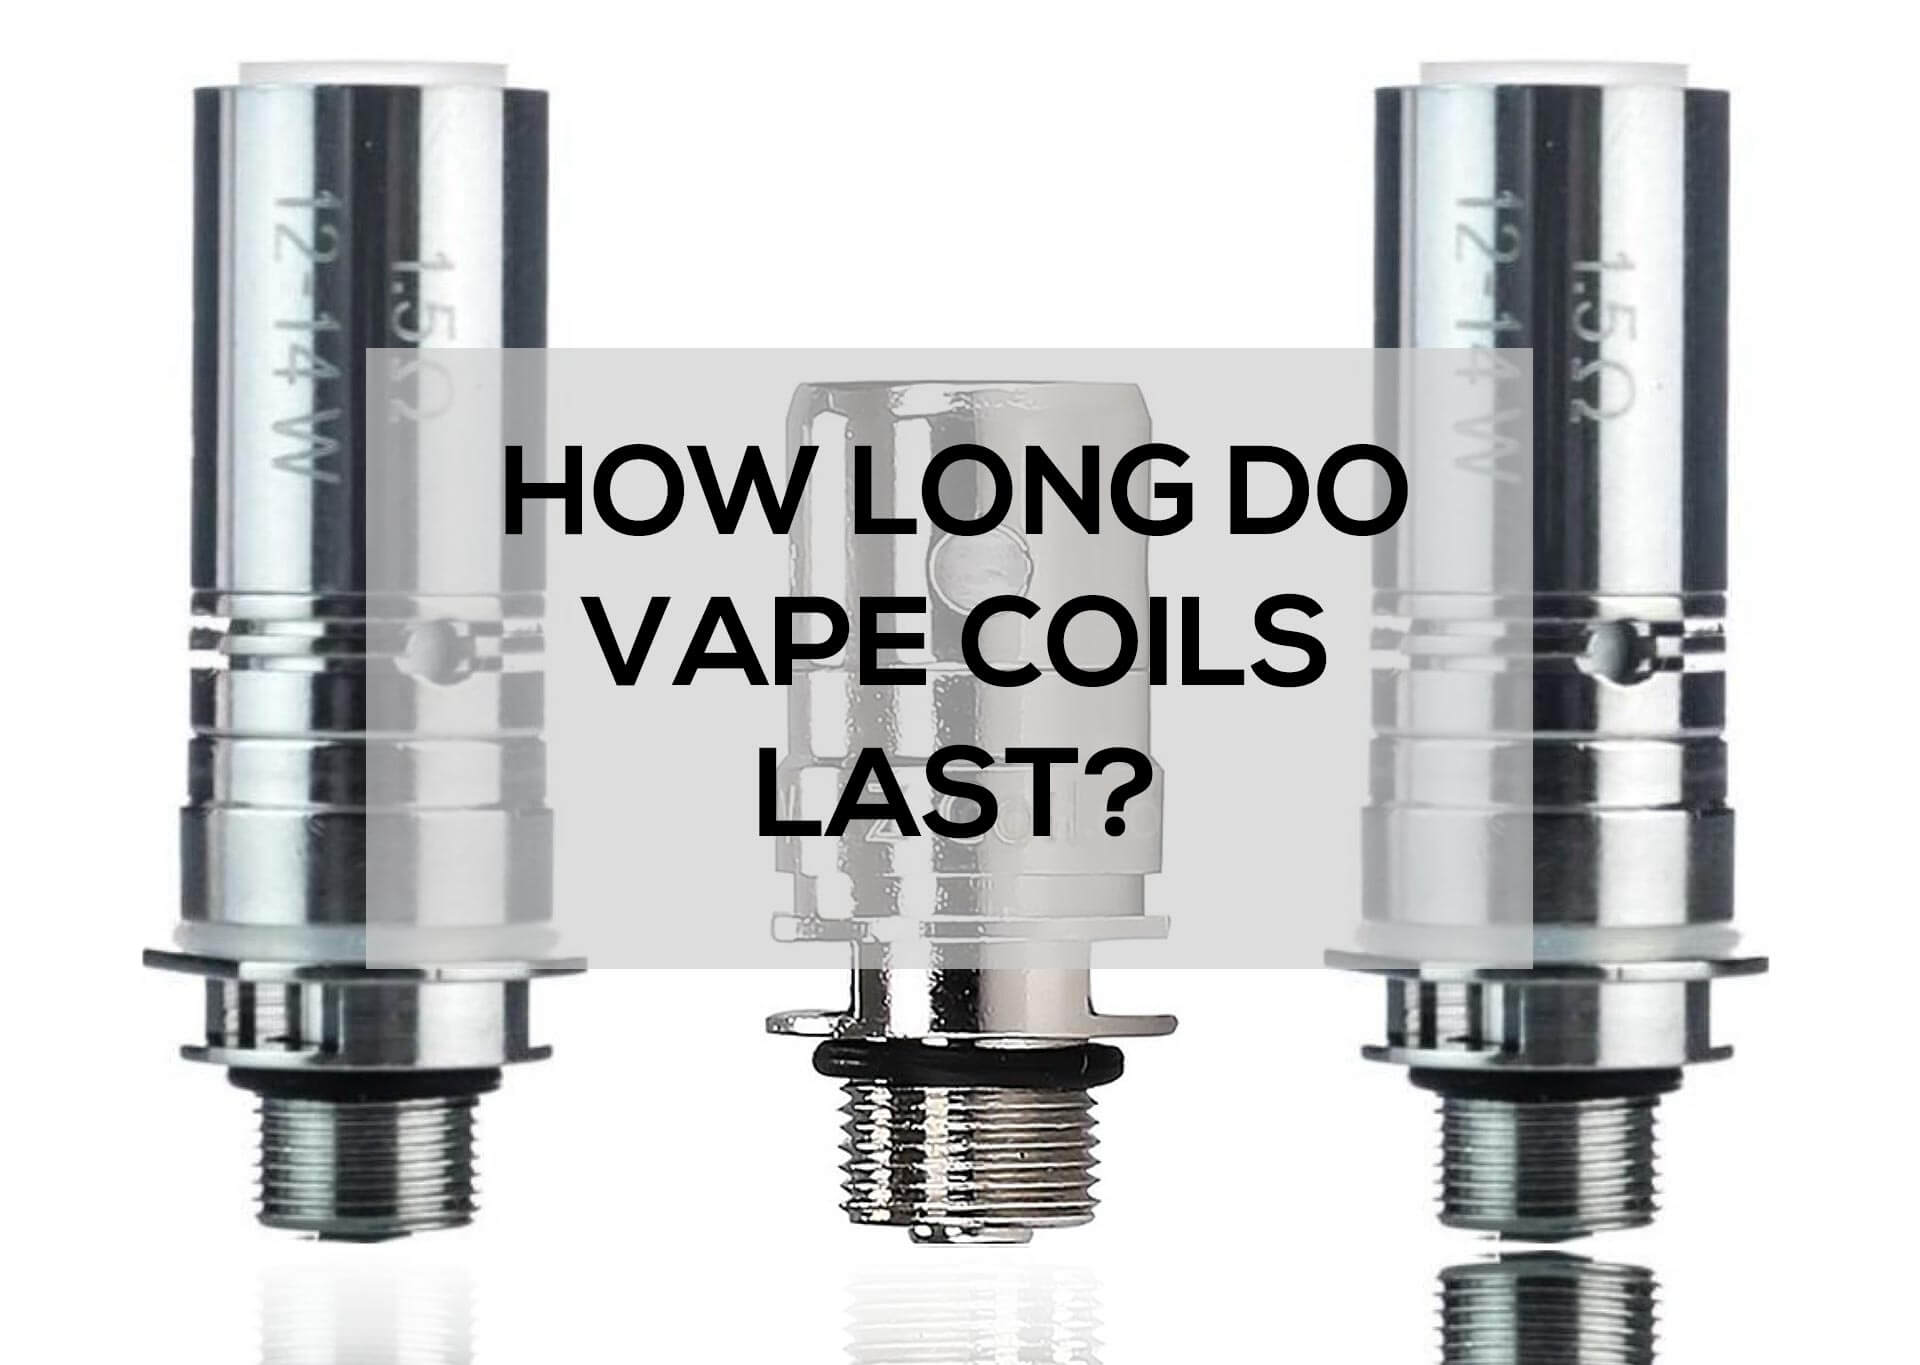 How-Long-Do-Vape-Coils-Last-